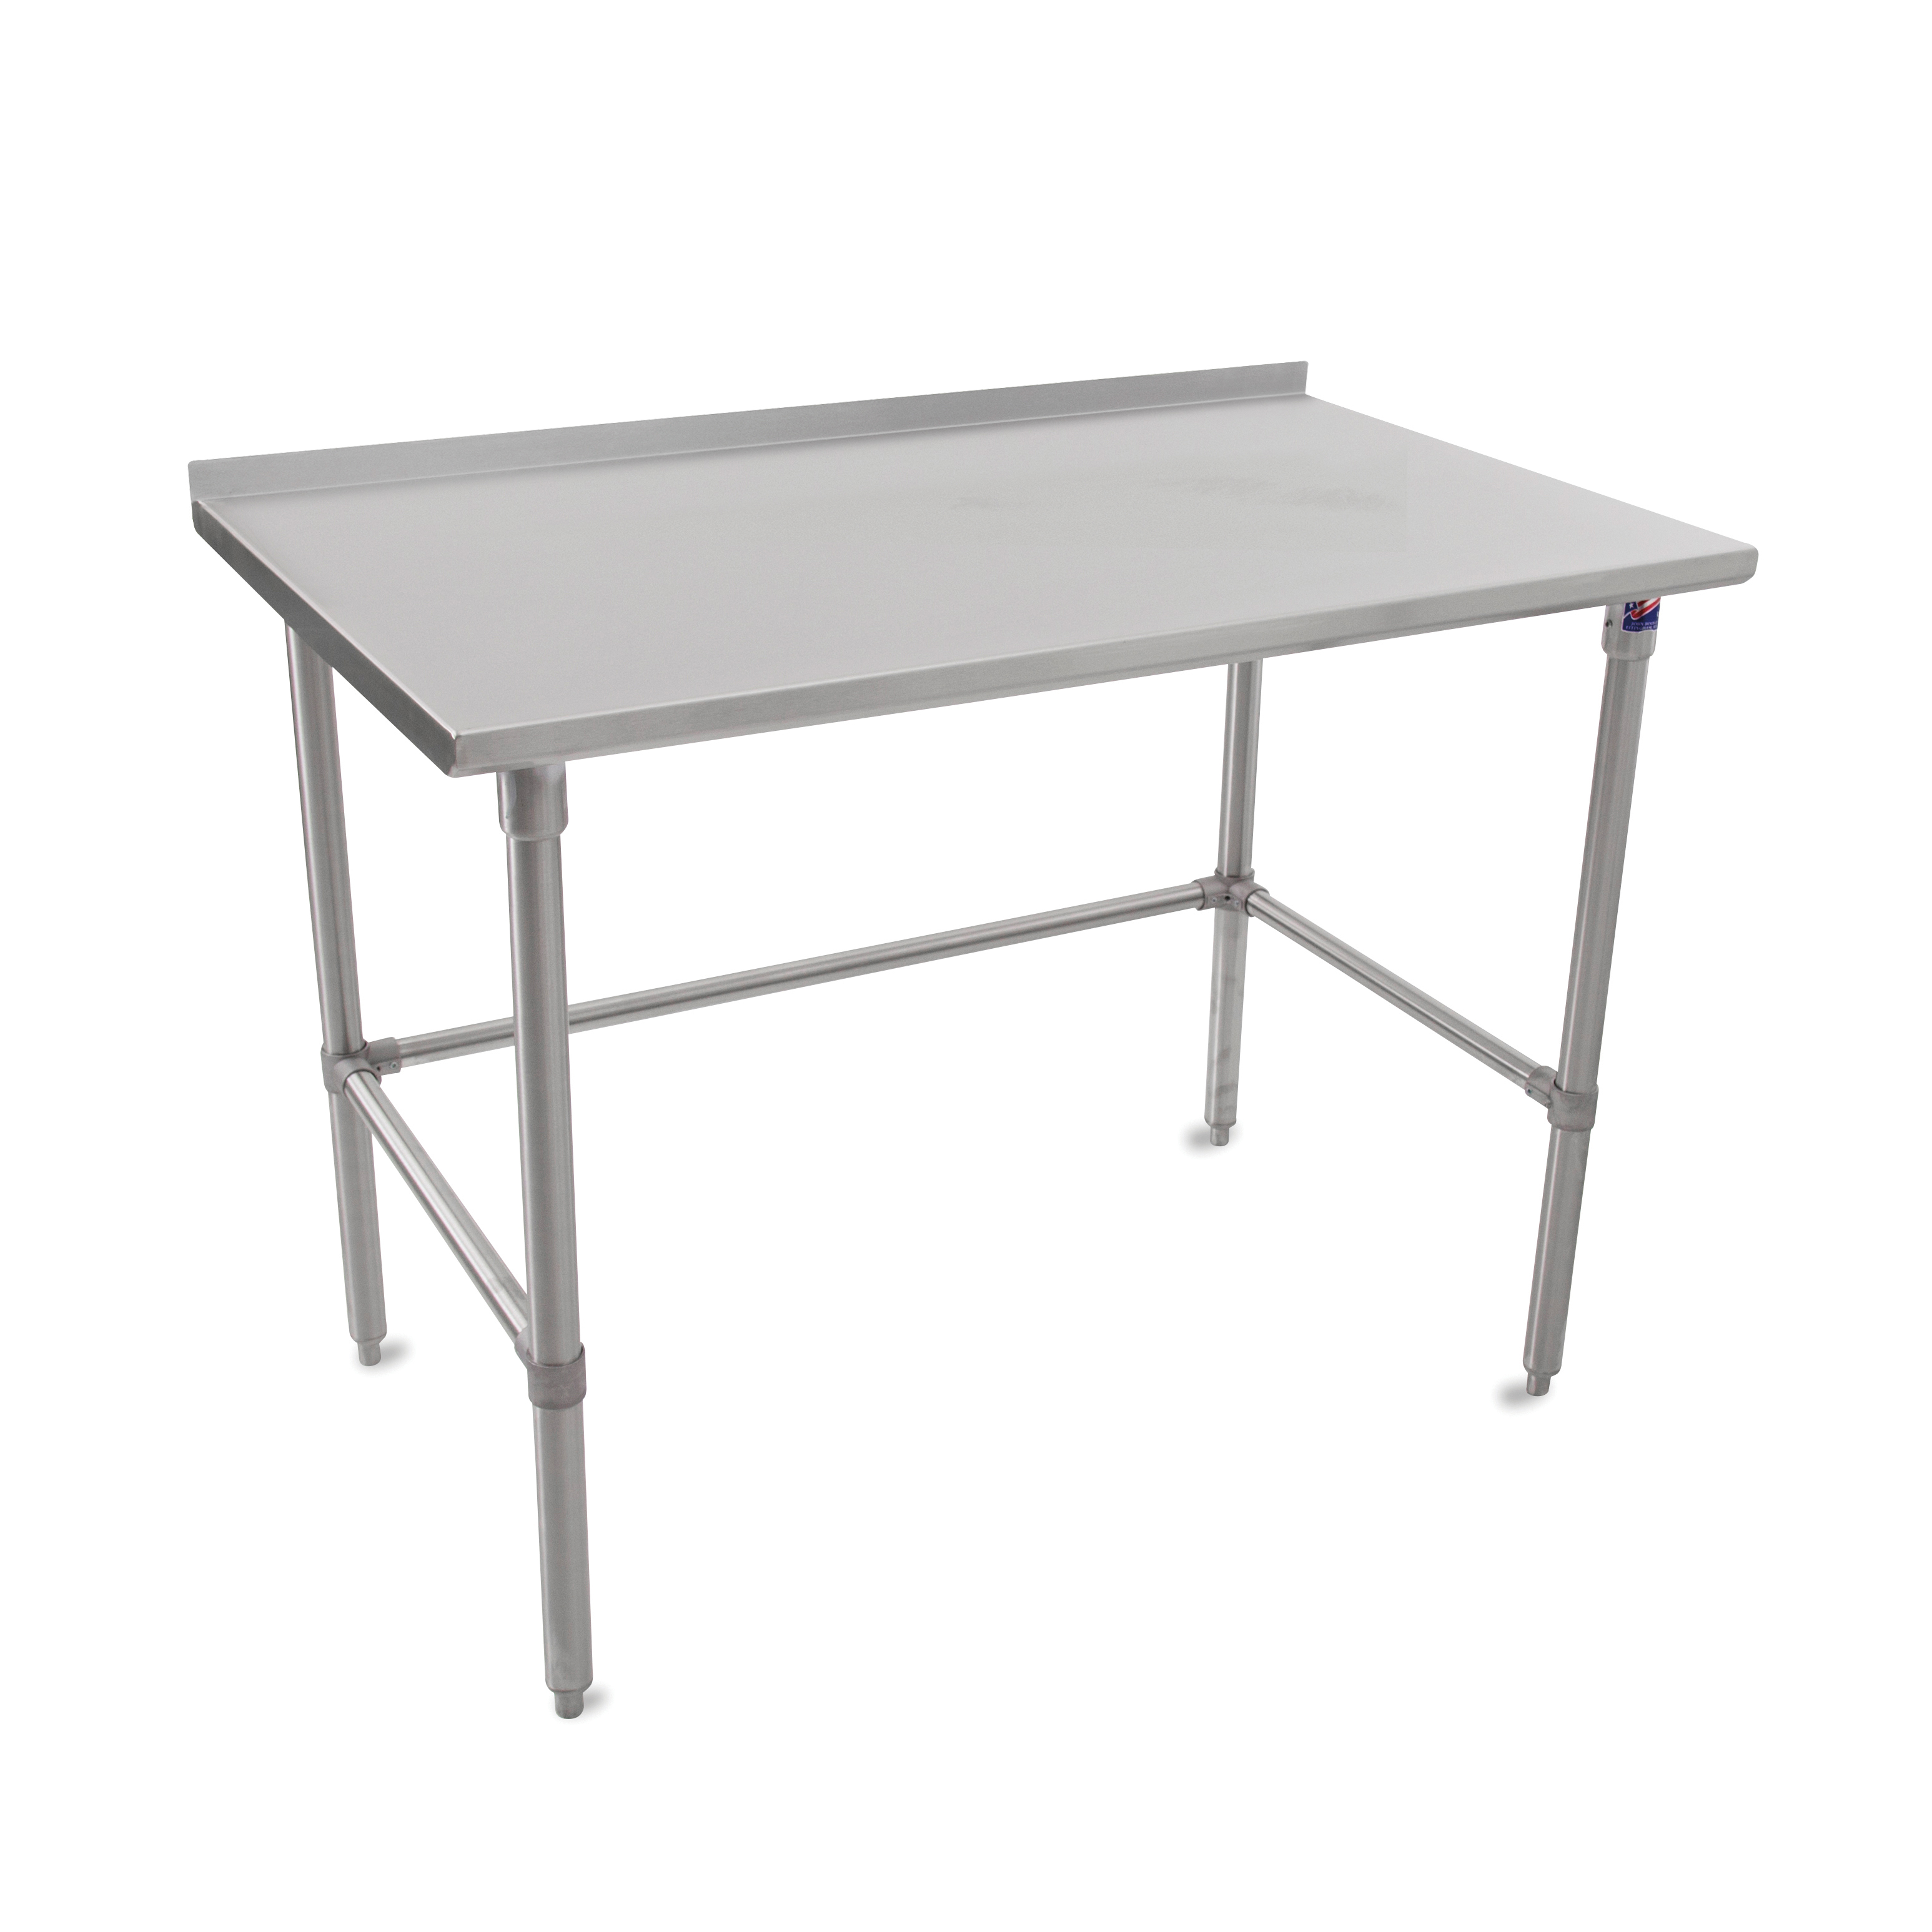 John Boos ST6R1.5-30108SBK work table,  97